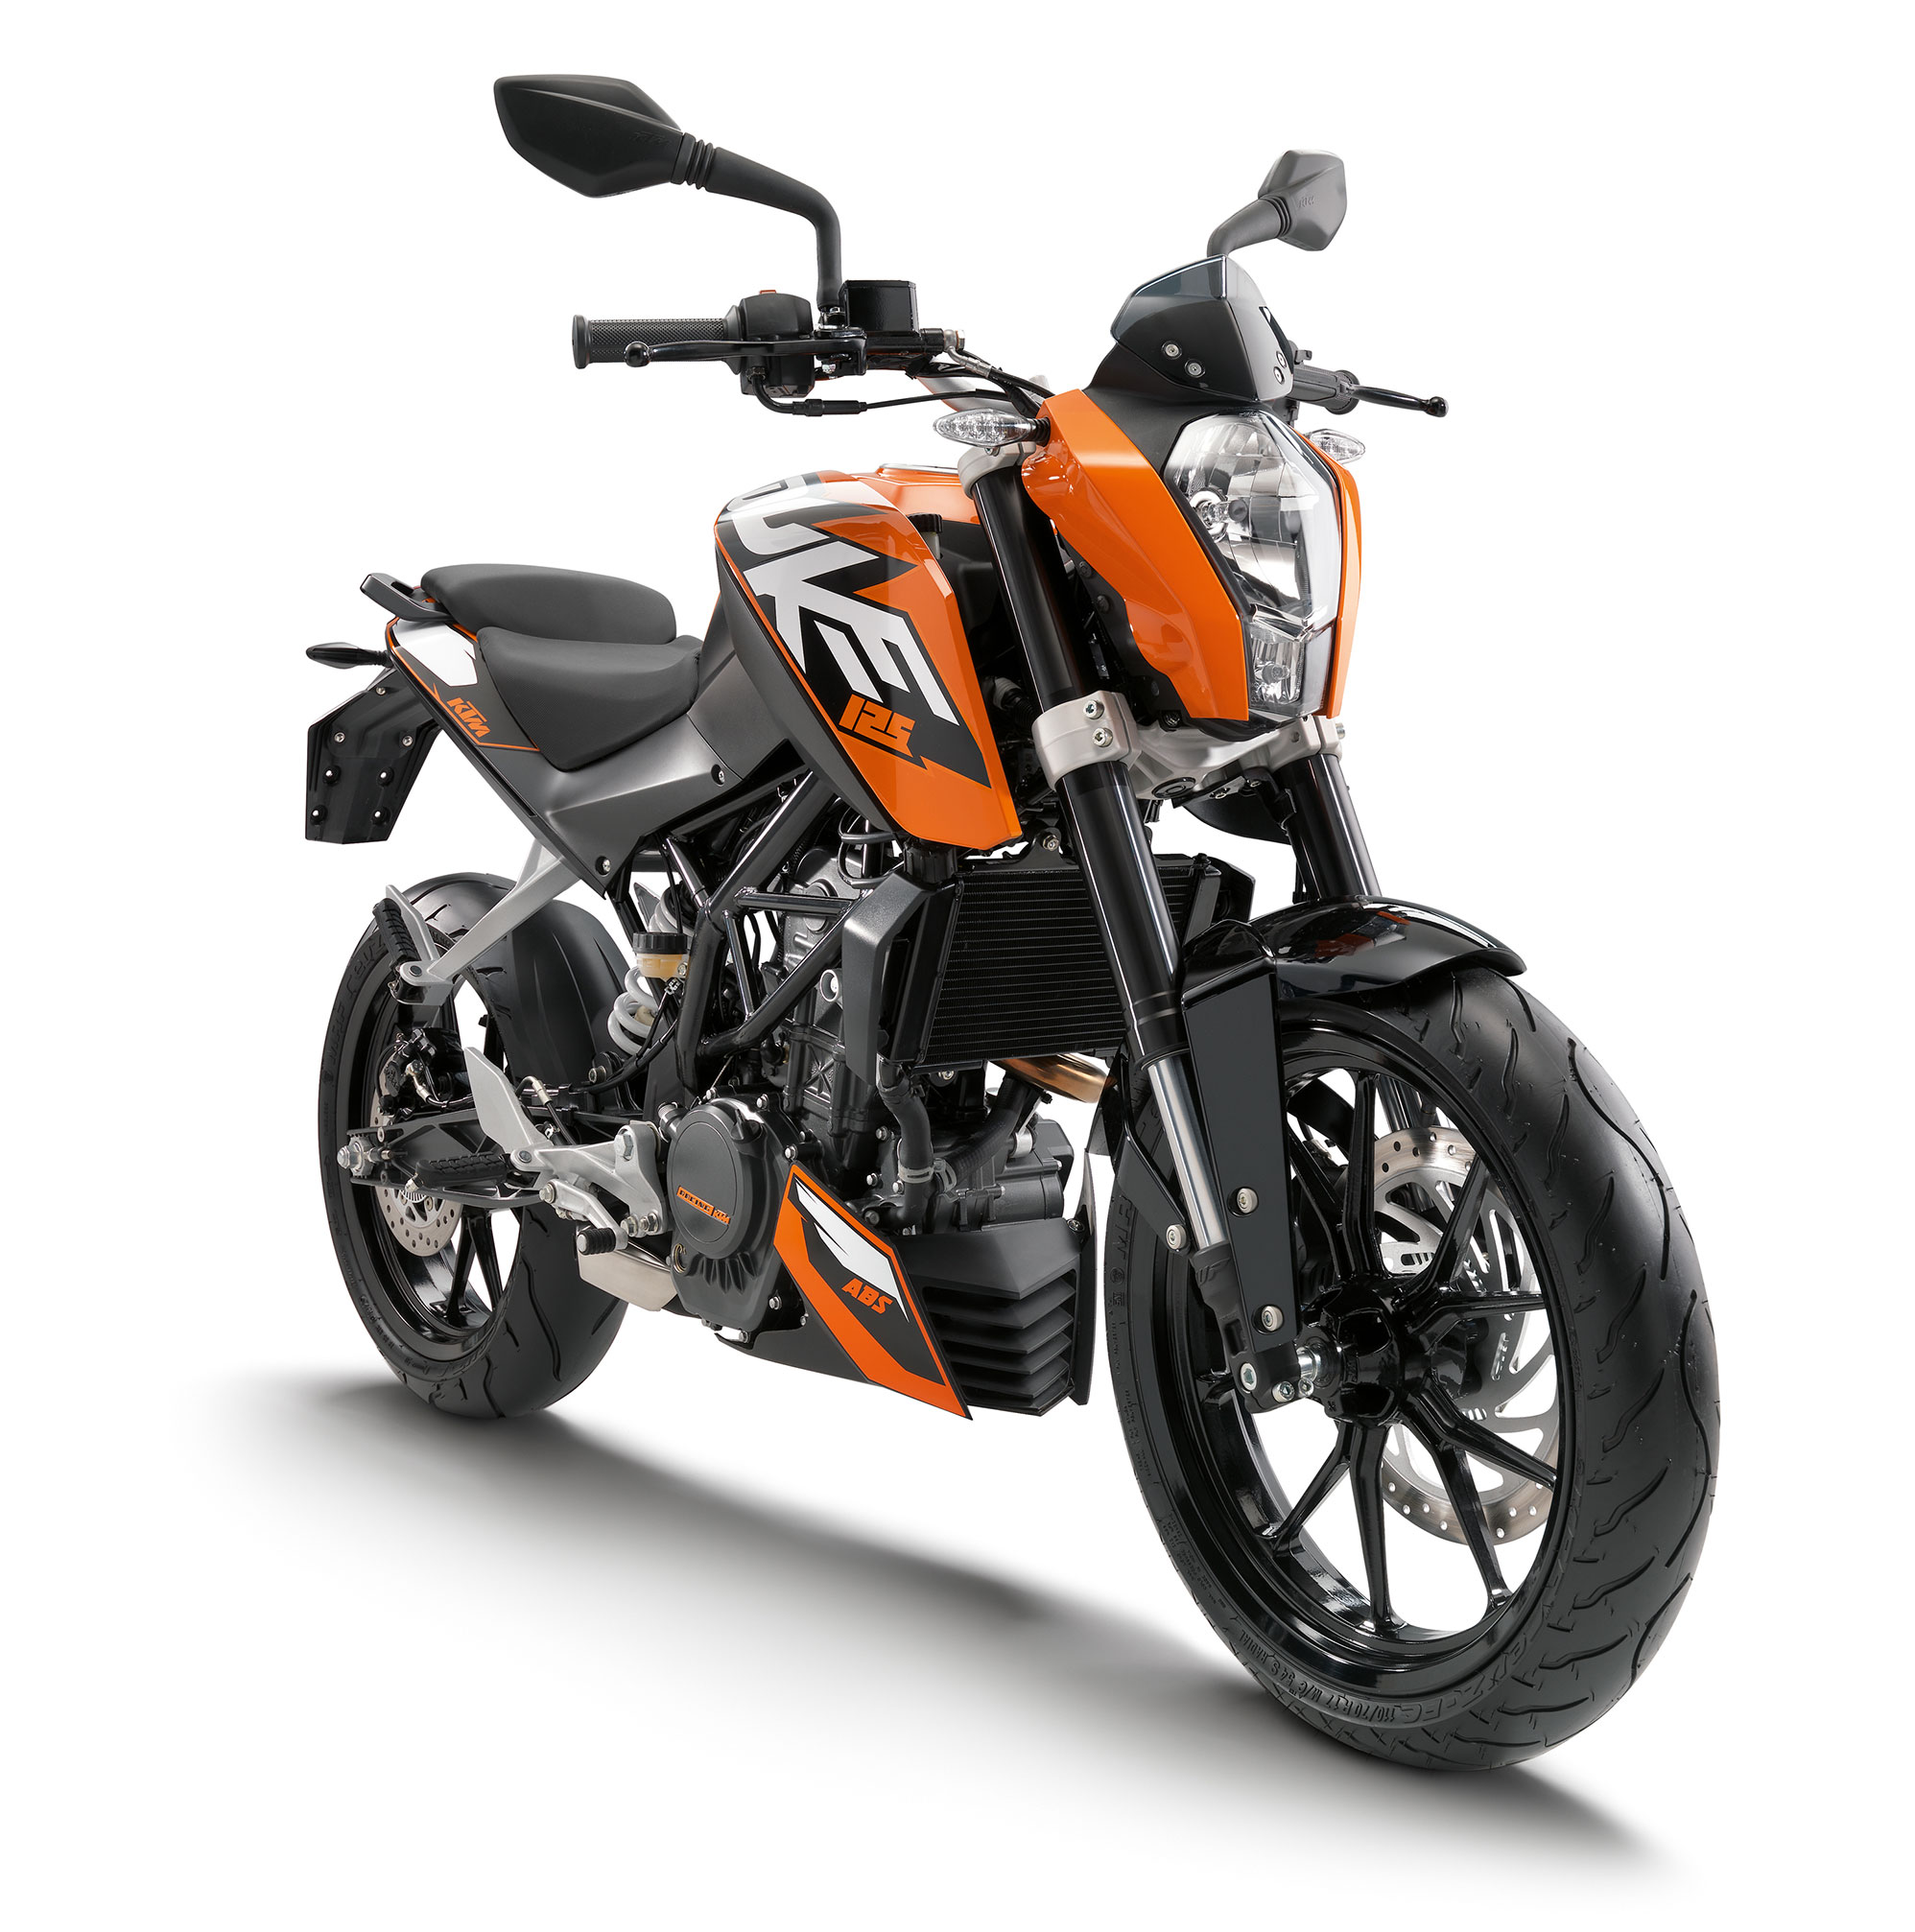 ktm 125 duke abs motor city amsterdam. Black Bedroom Furniture Sets. Home Design Ideas